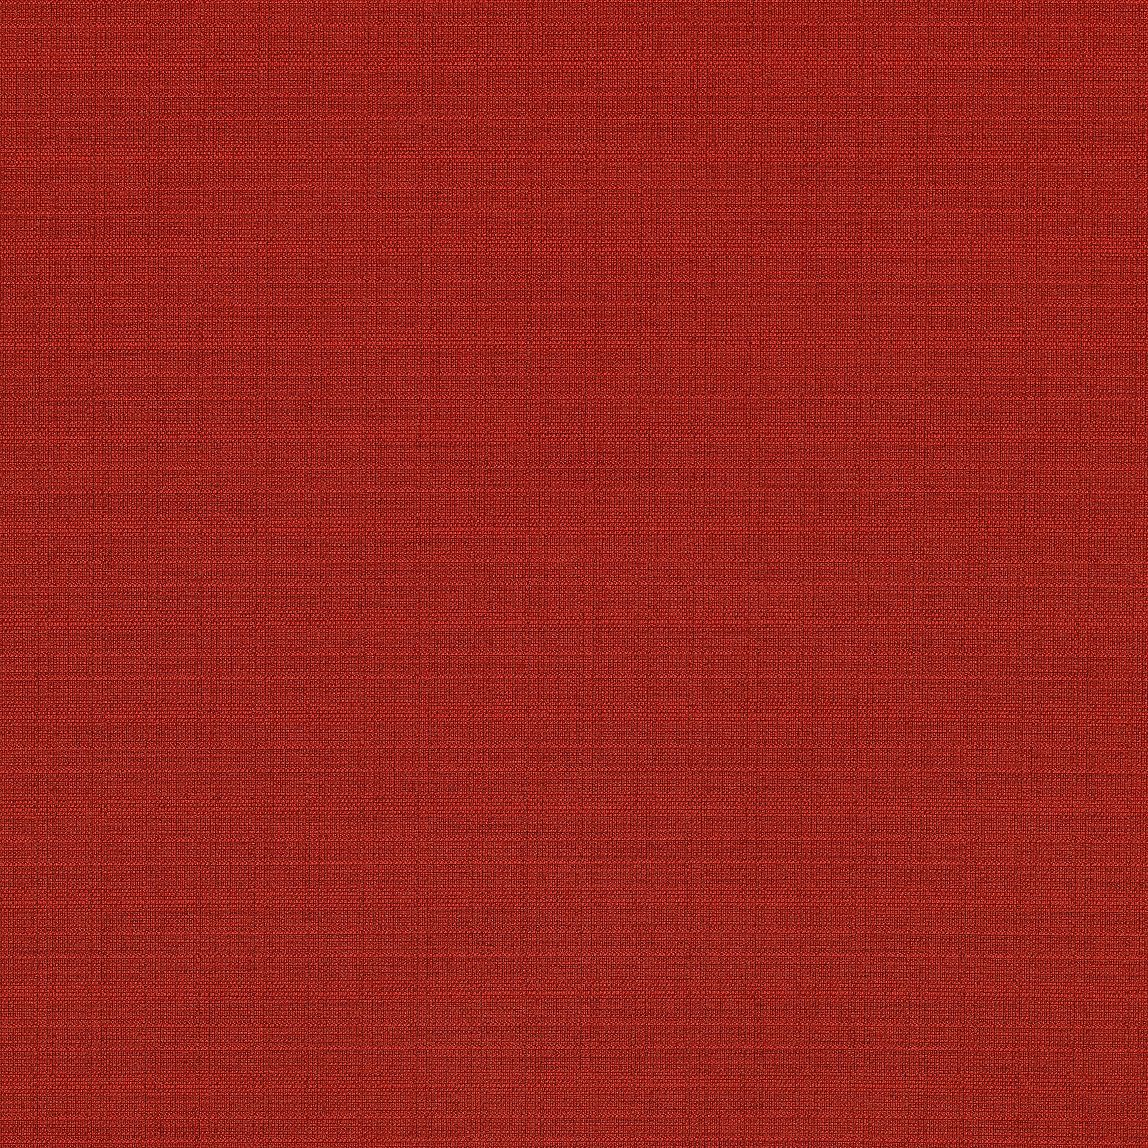 Squire Ruby Swatch